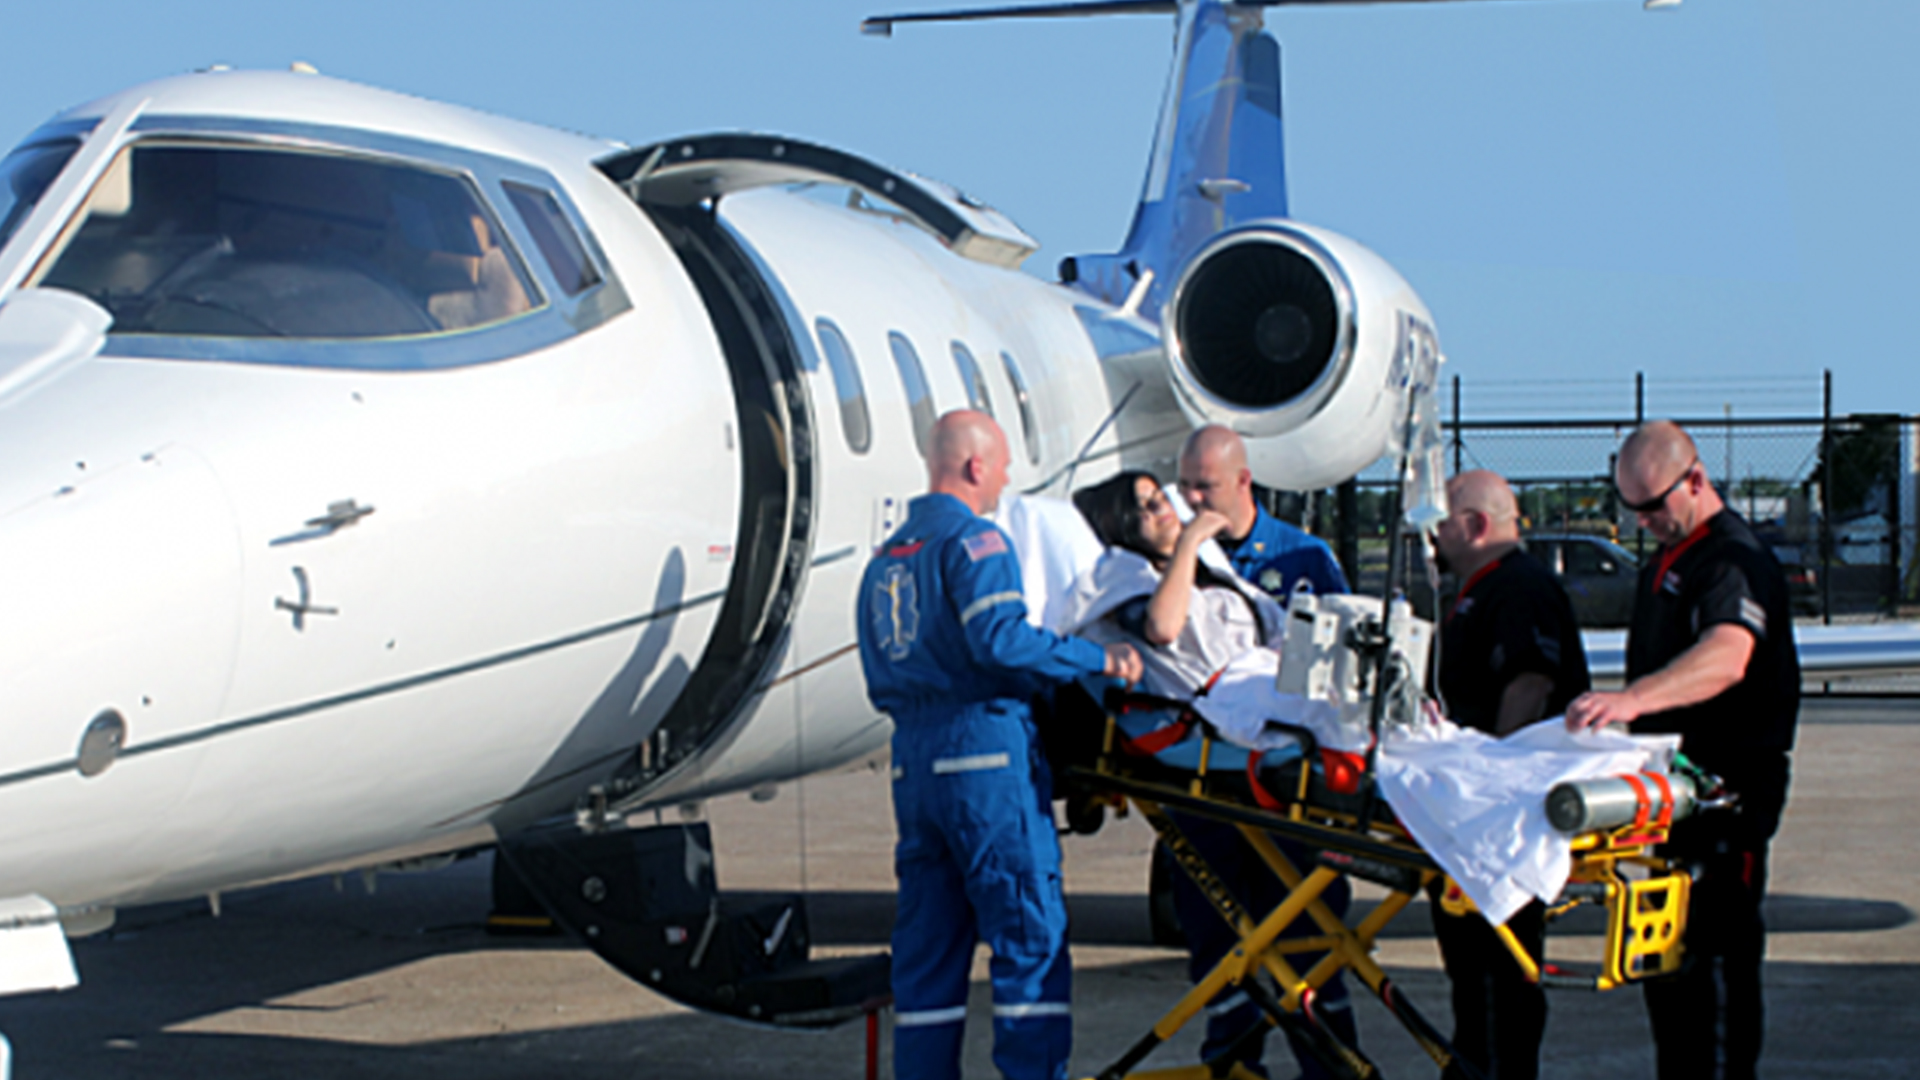 patient carried into air ambulance aircraft by medical team